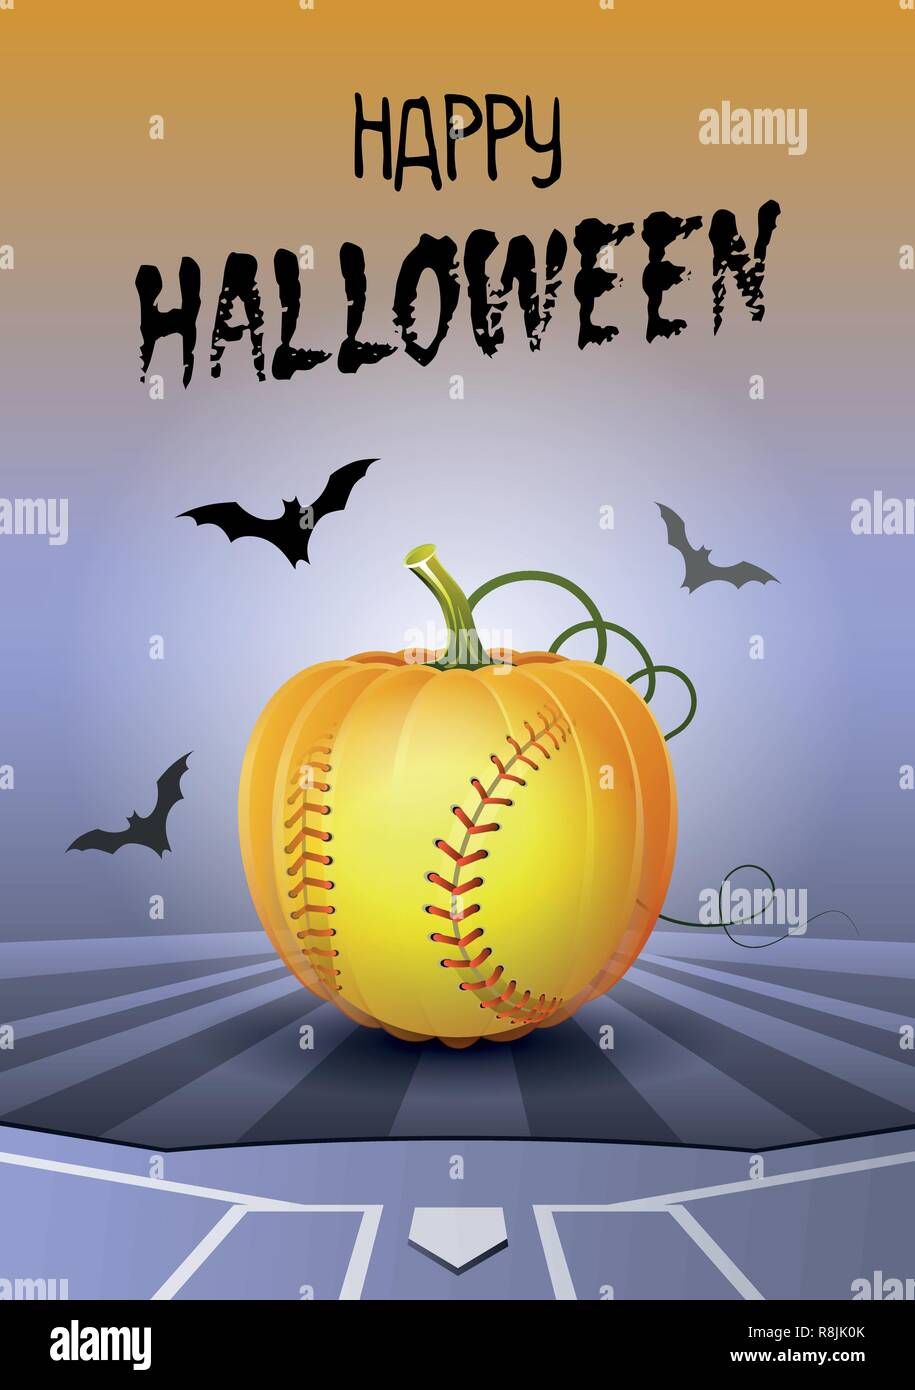 Happy Halloween. Sports greeting card. Realistic softball ball in the shape of a Pumpkin. Vector illustration. Stock Vector